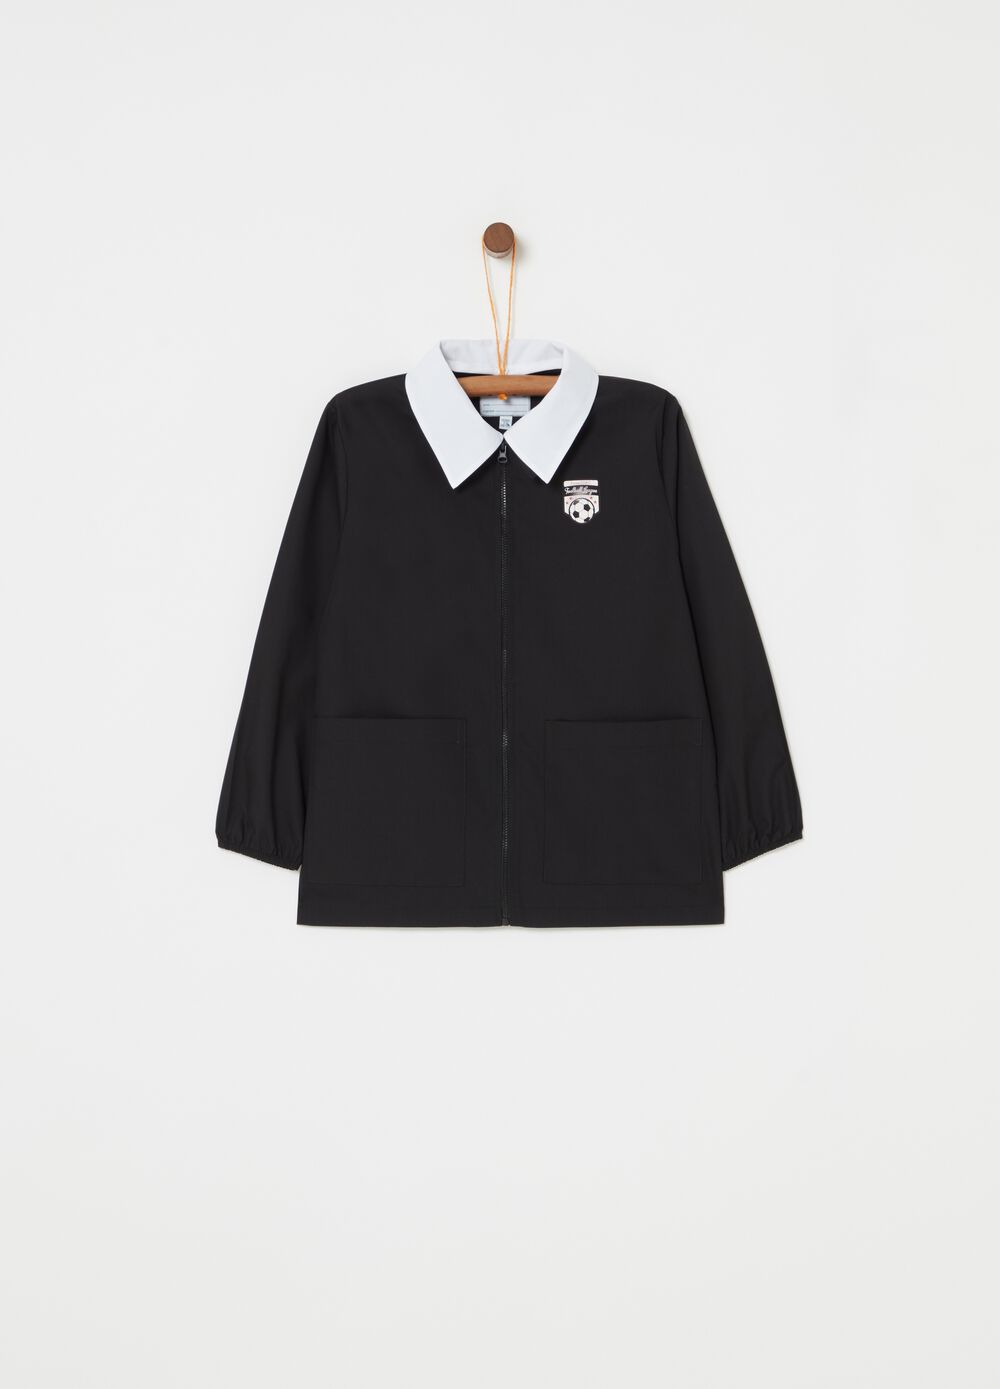 Smock with zip fastening and football embroidery